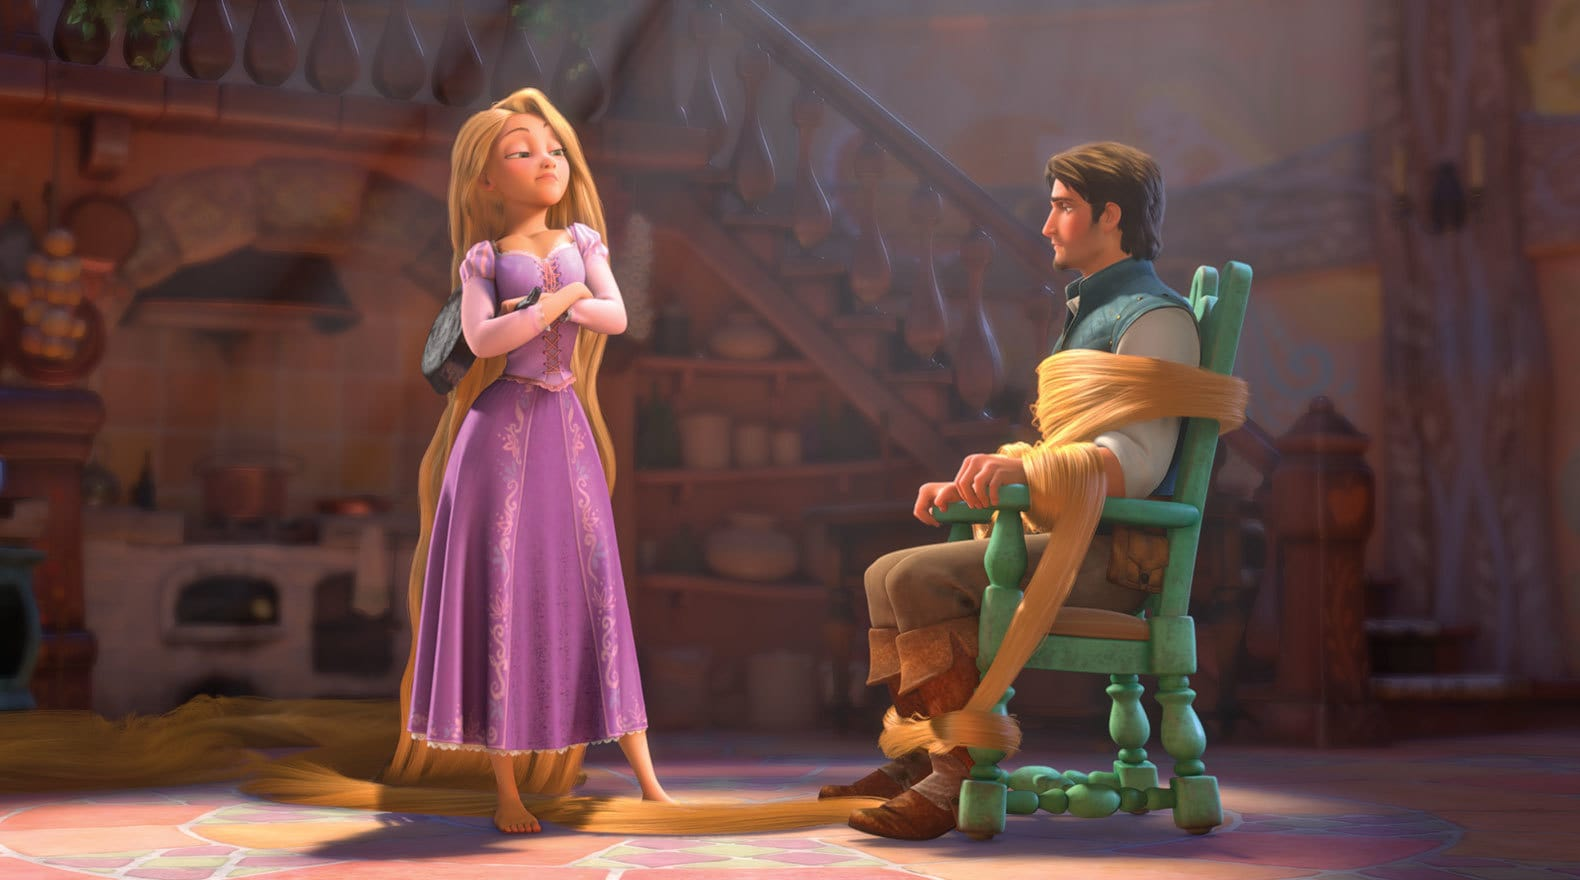 Rapunzel voiced by Mandy Moore ties up Flynn Rider voiced by Zachary Levi,  using her hair